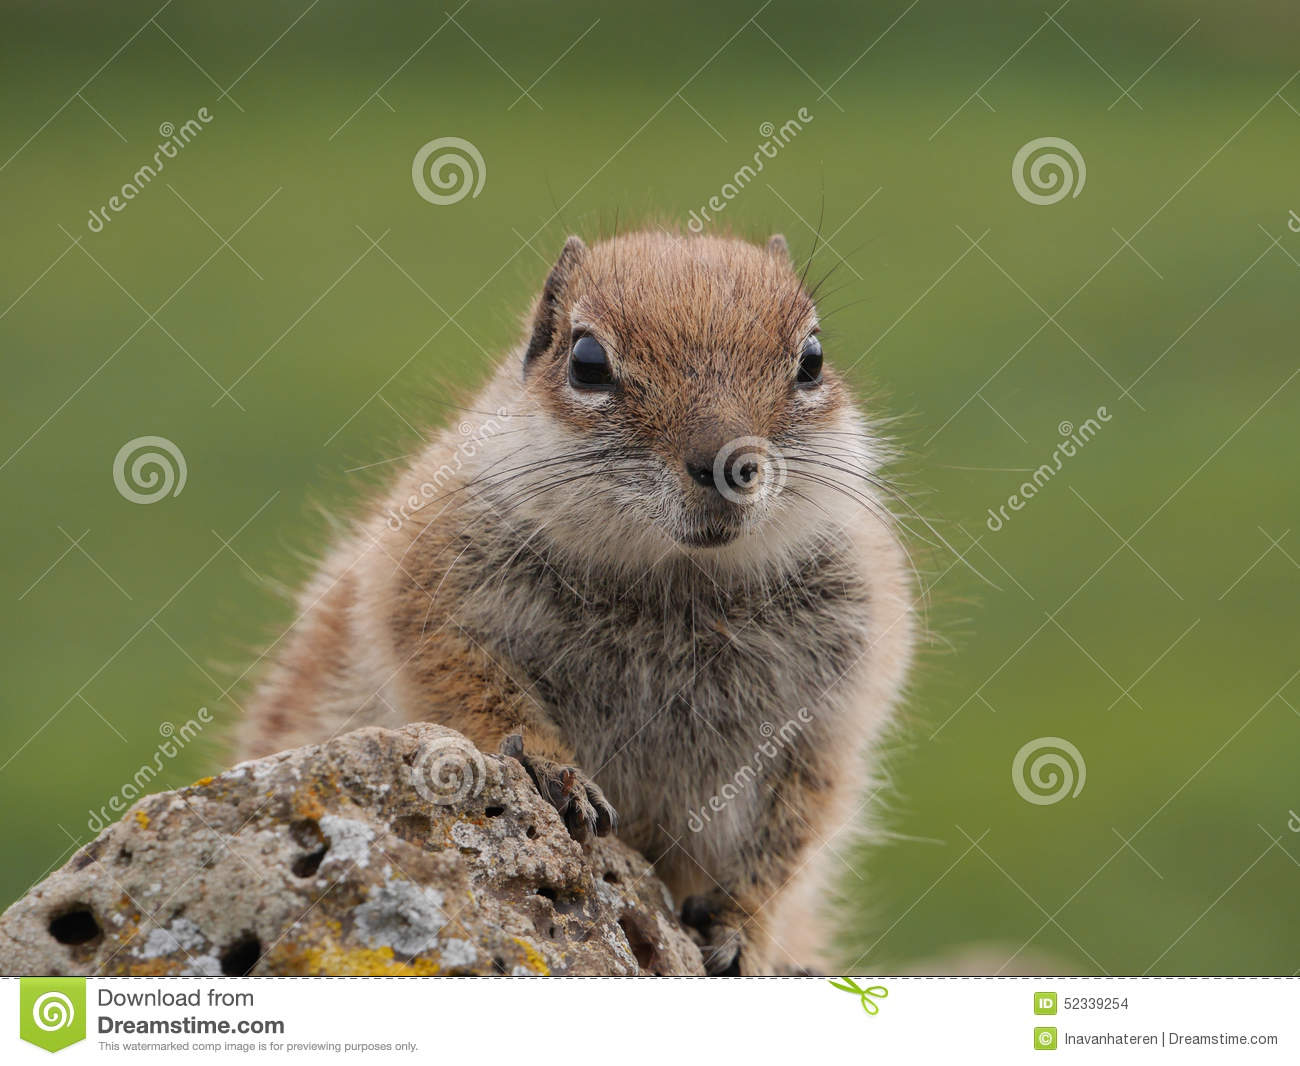 squirrel island single guys Buy squirrel island maine t-shirt: shop top fashion brands novelty at amazoncom free delivery and returns possible on eligible purchases.